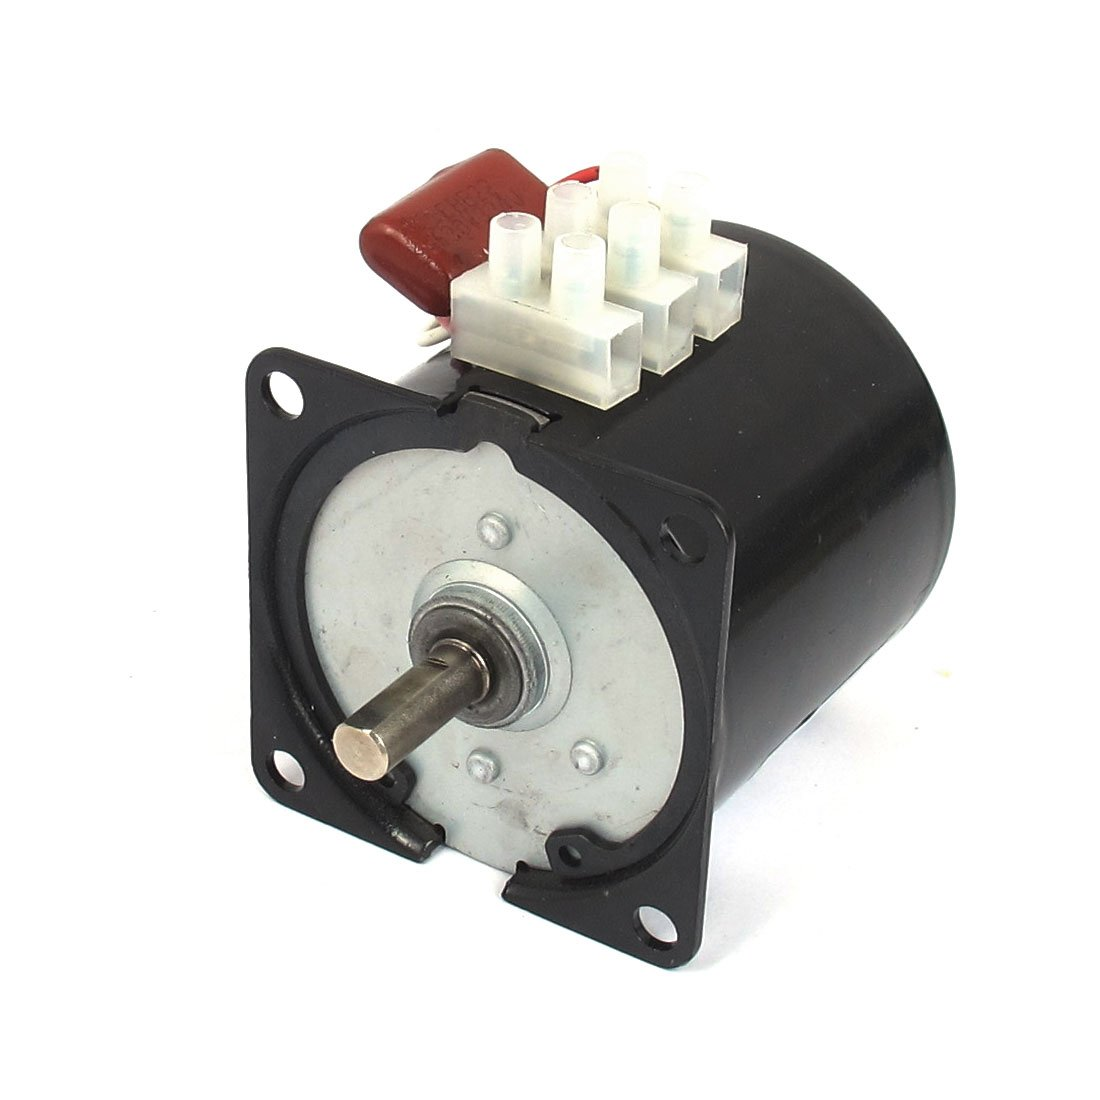 61Wq874%2B7bL._SL1100_ sourcingmap� ac 220v 10rpm 50hz electric machine gear motor 60ktyz 60ktyz wiring diagram at nearapp.co